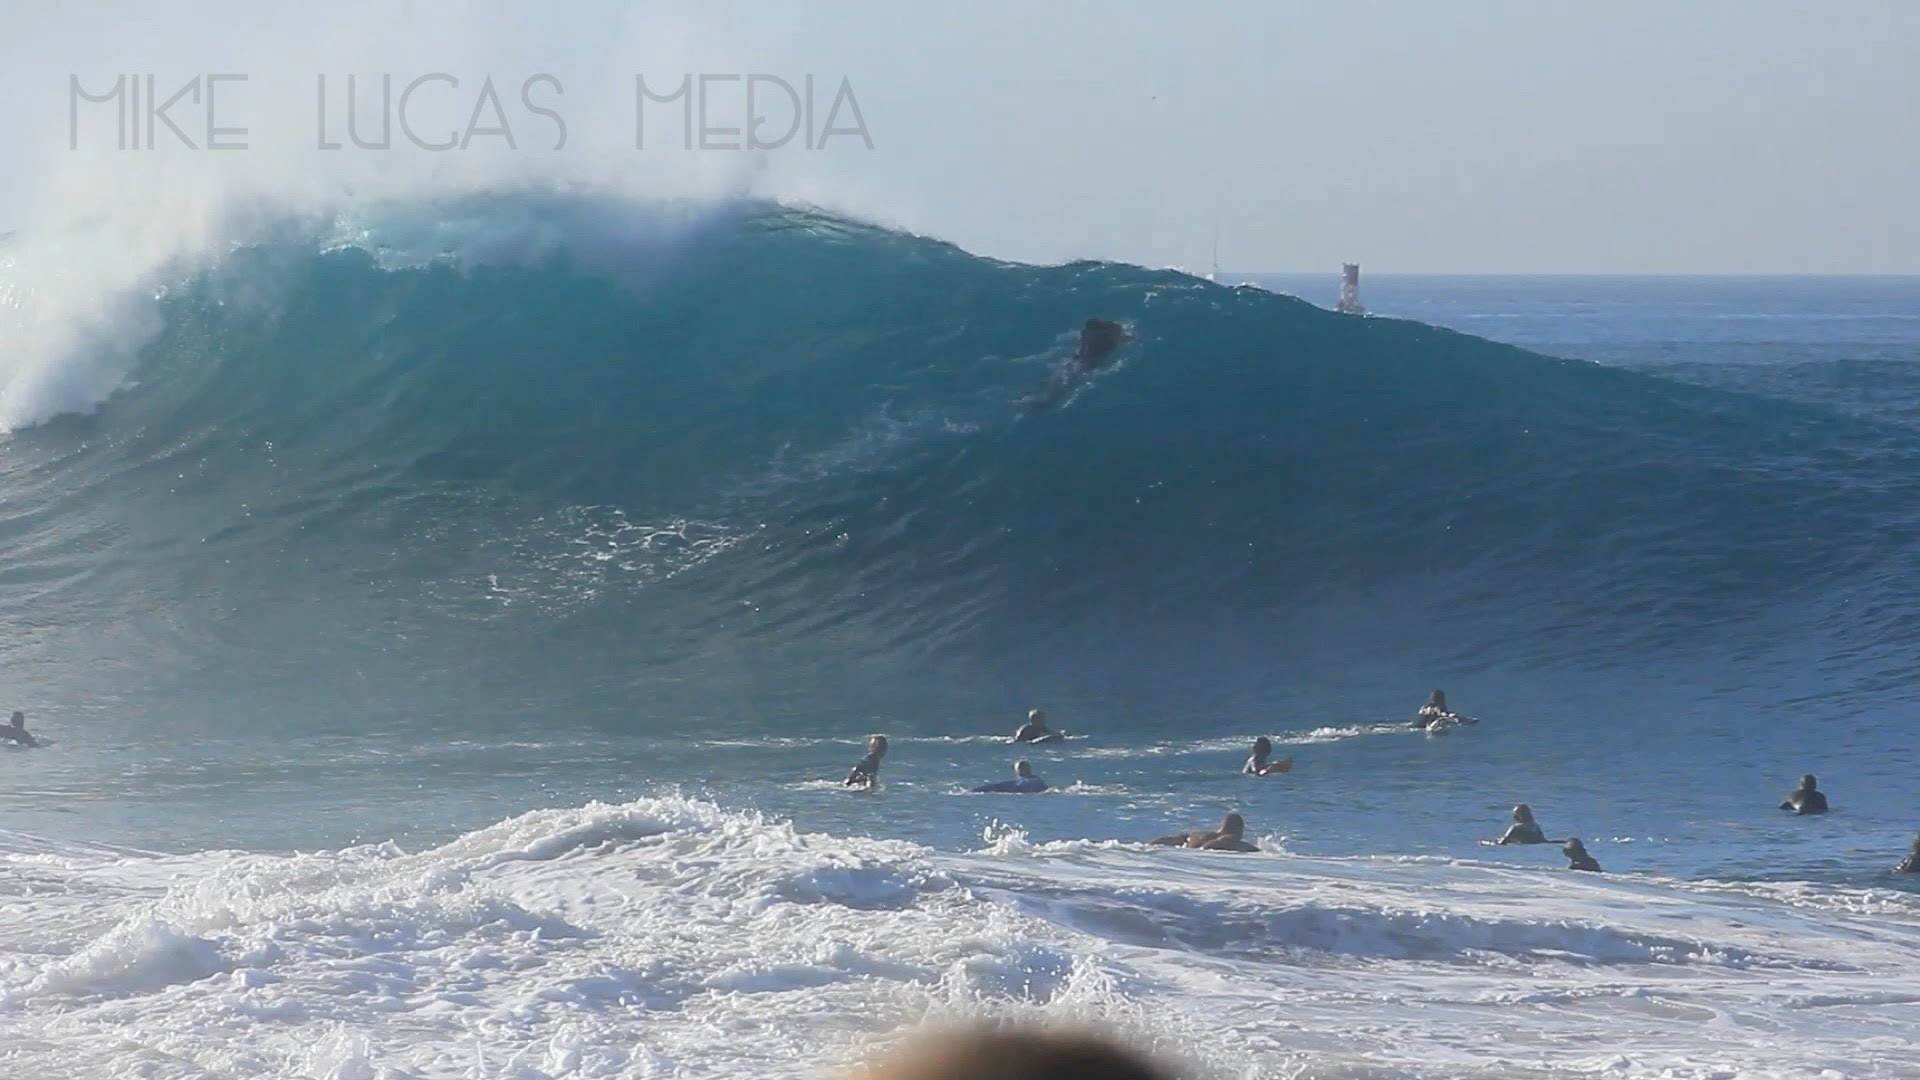 One Big Day For Surfers @ The Wedge